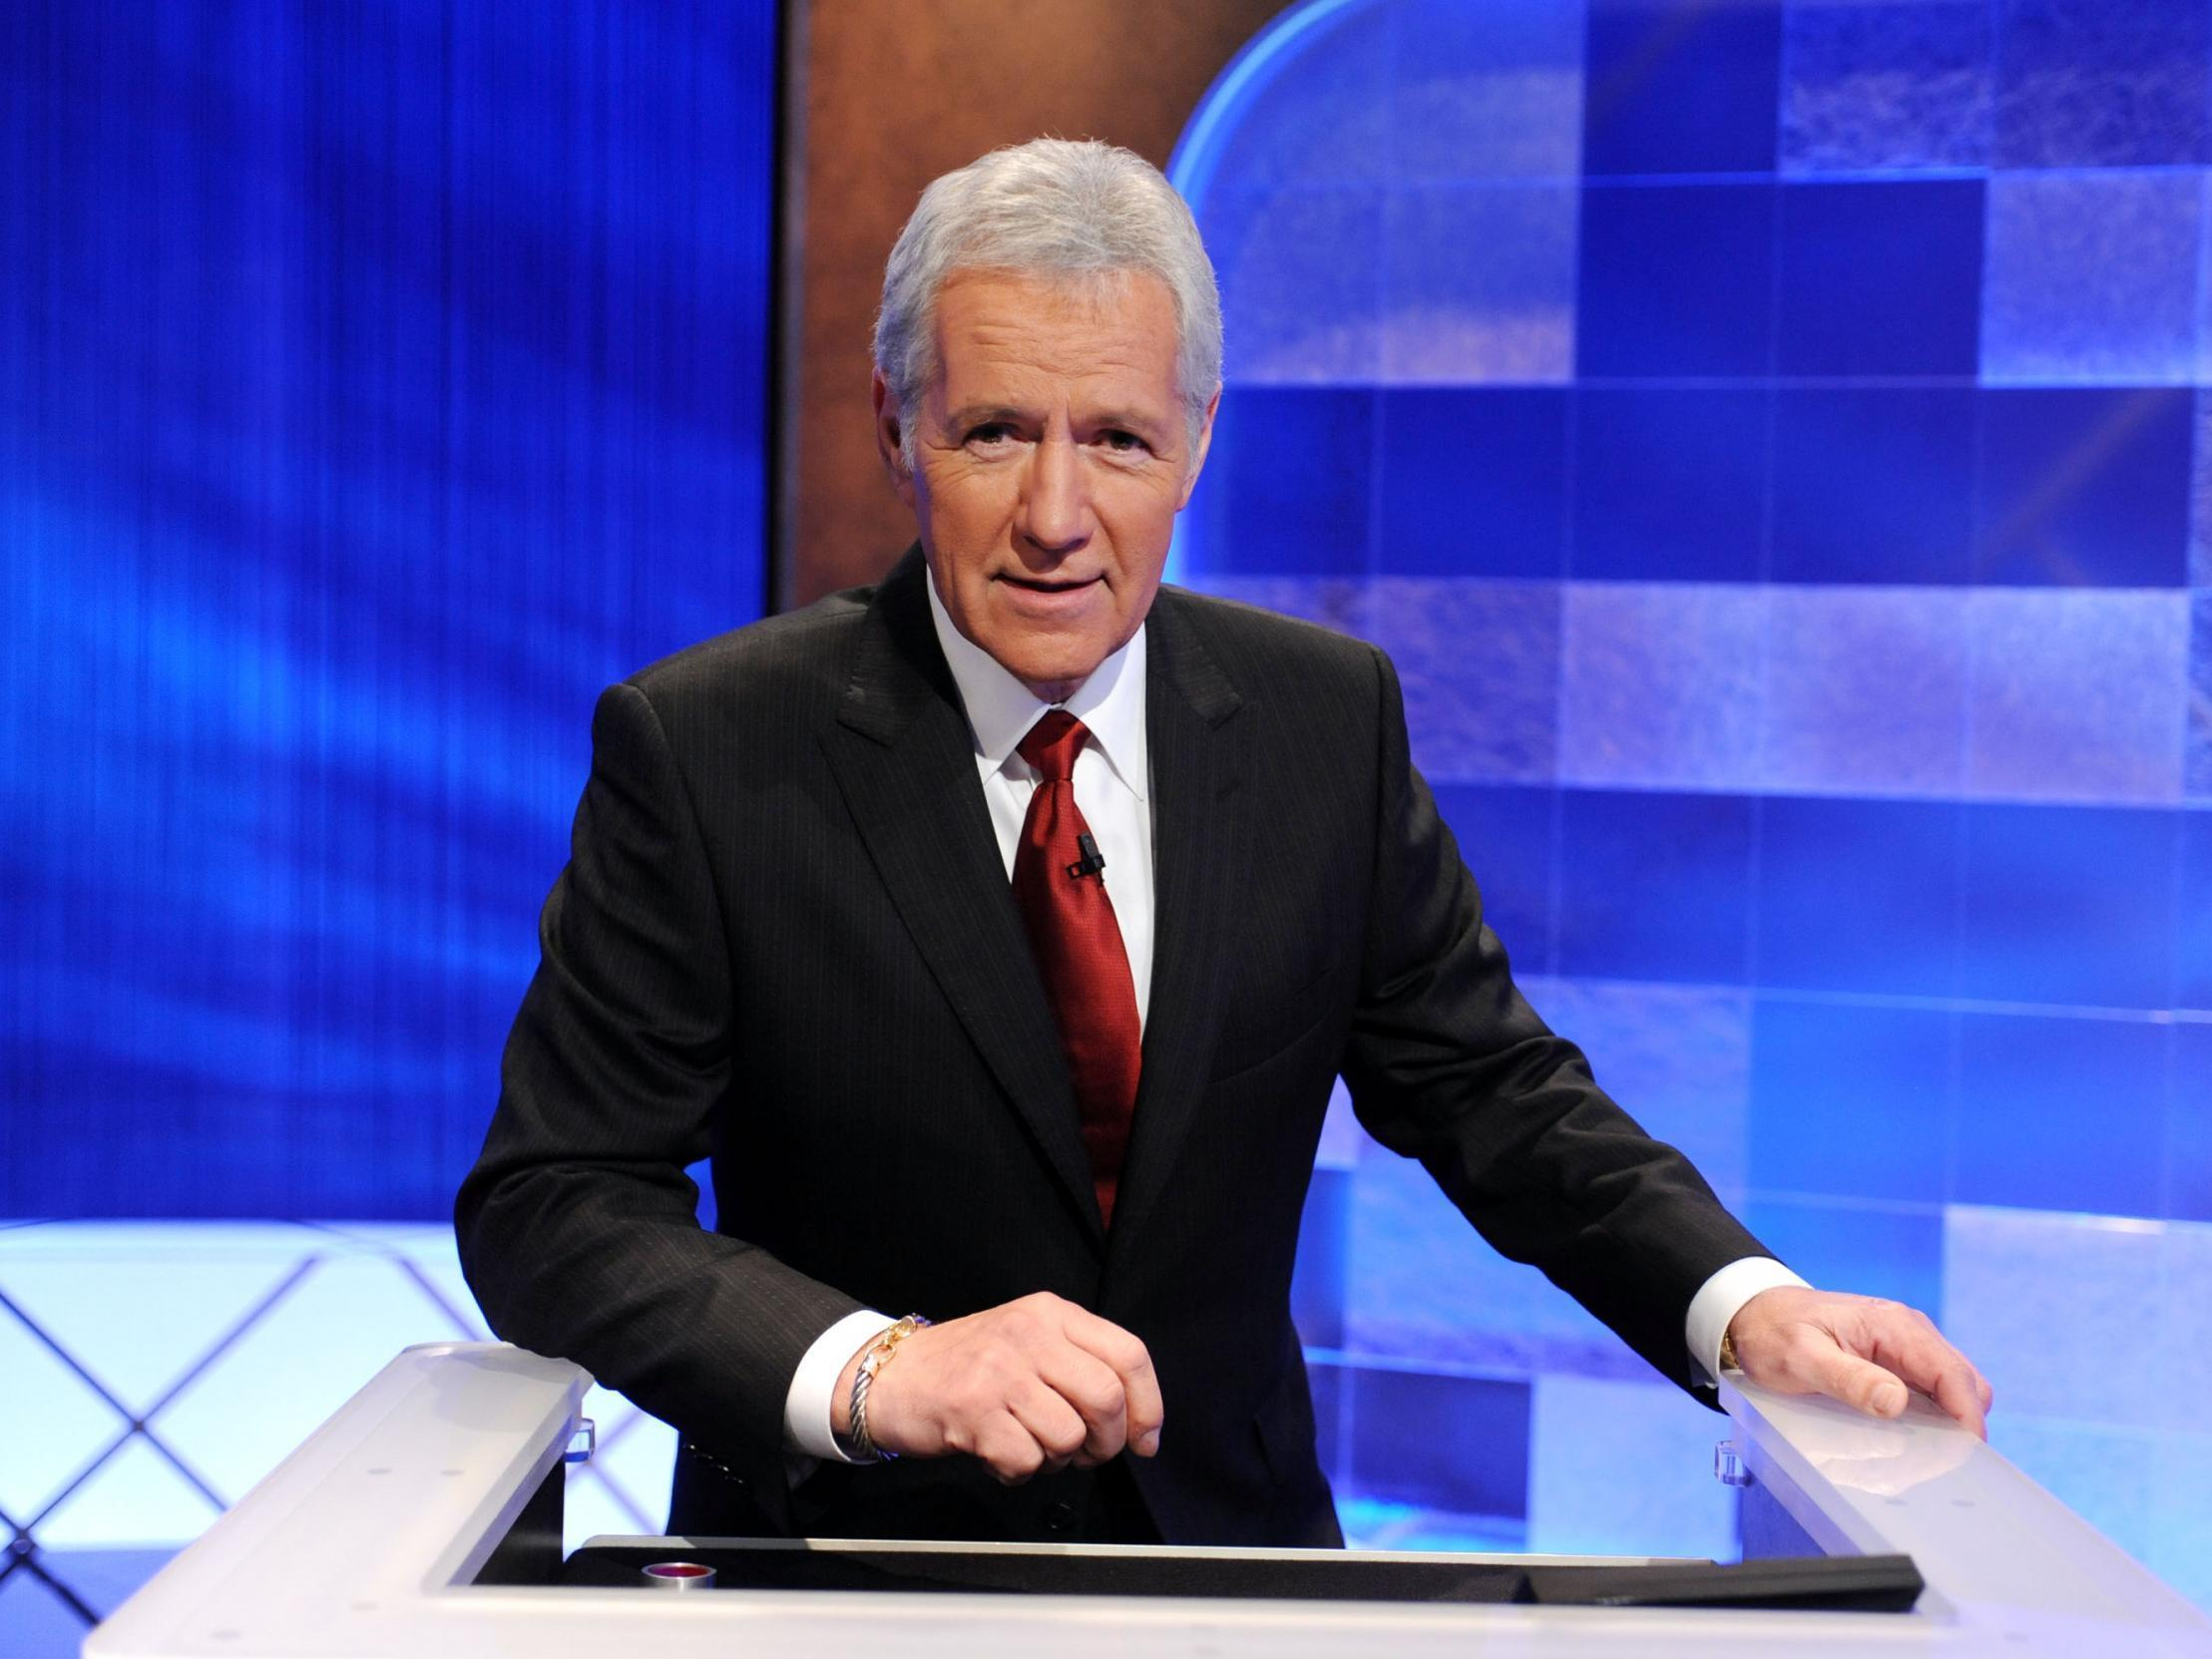 Alex Trebek gets emotional on 'Jeopardy!' following contestant's unexpected heartfelt message